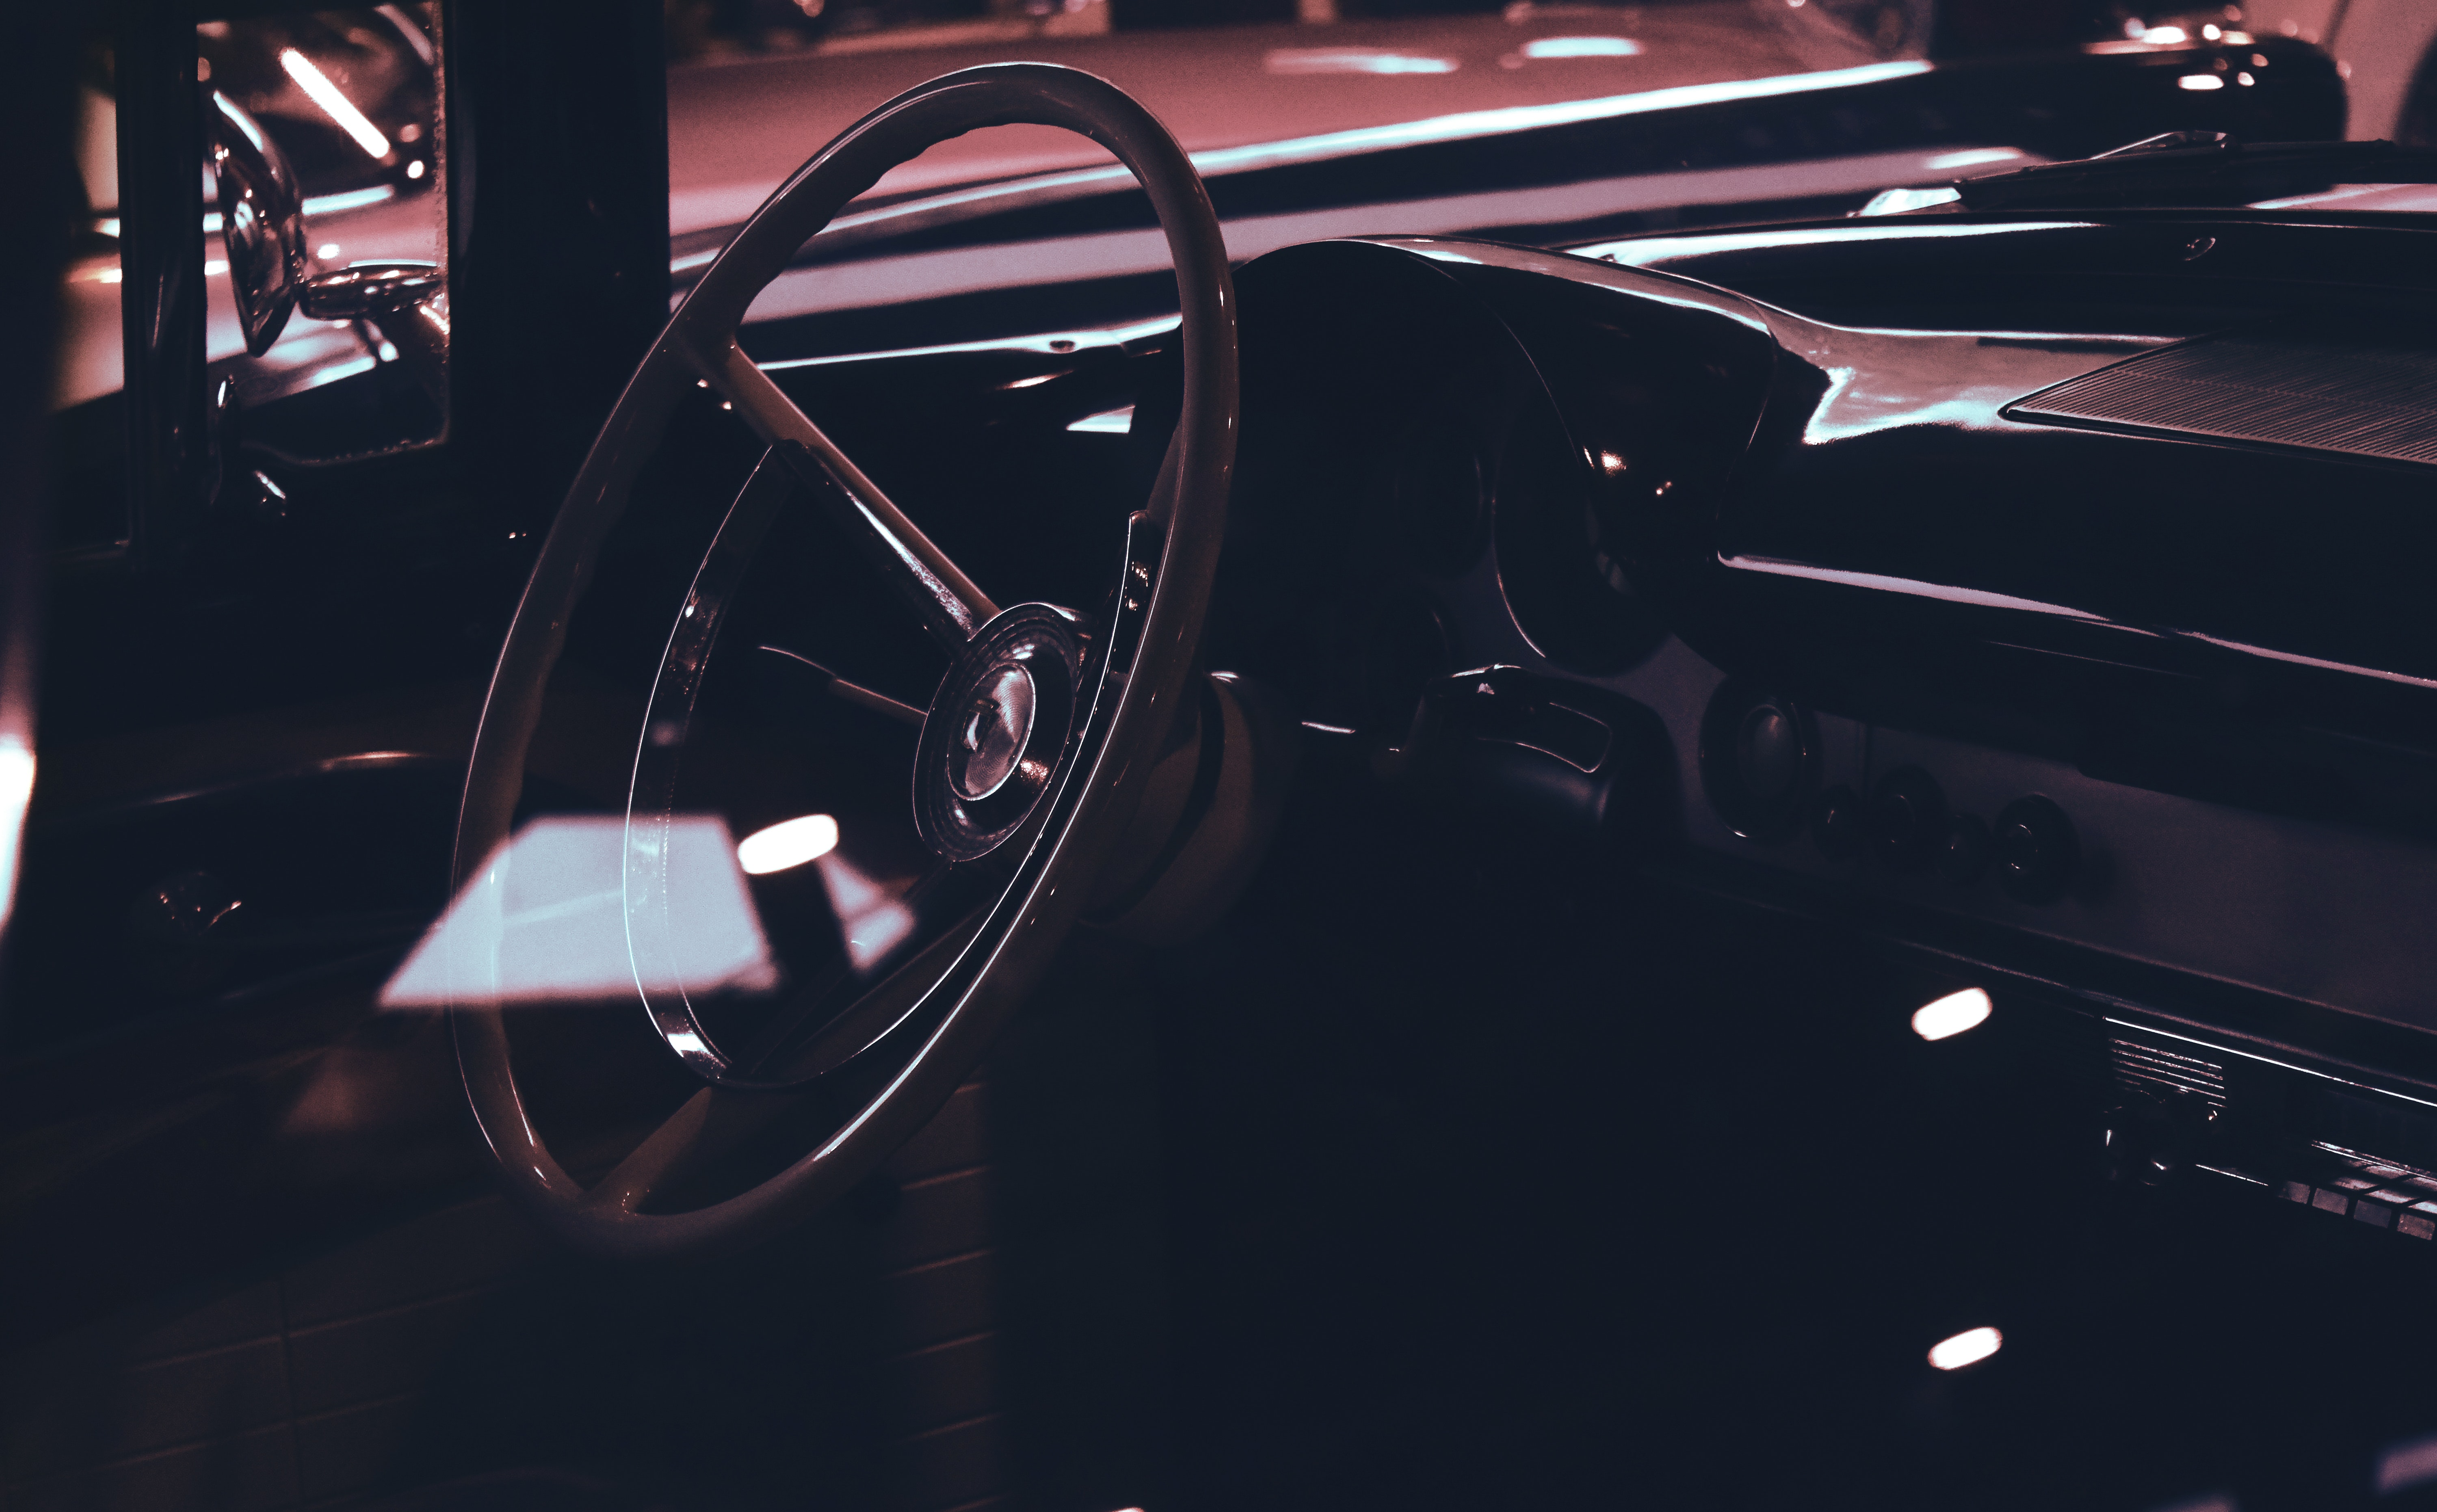 Classic Car Interior Showing Wooden Steering Wheel, Light reflections, Window, Vehicle, Transportation system, HQ Photo